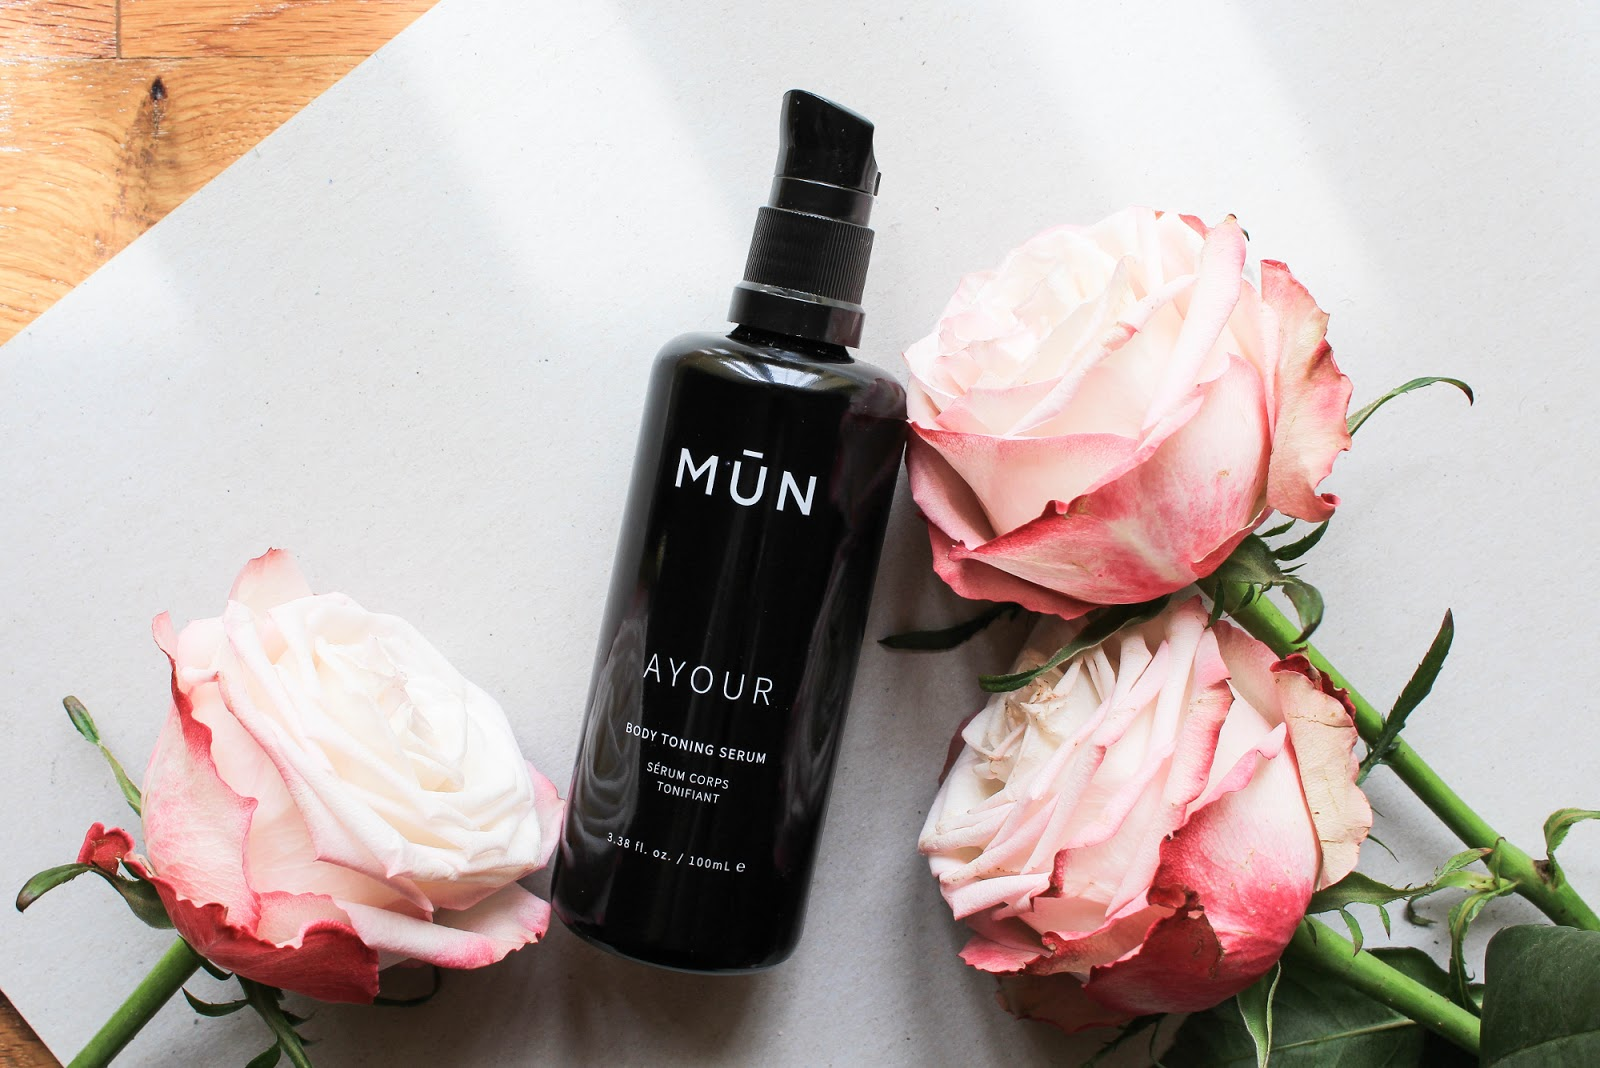 Ayour Body Toning Serum Mun Skin